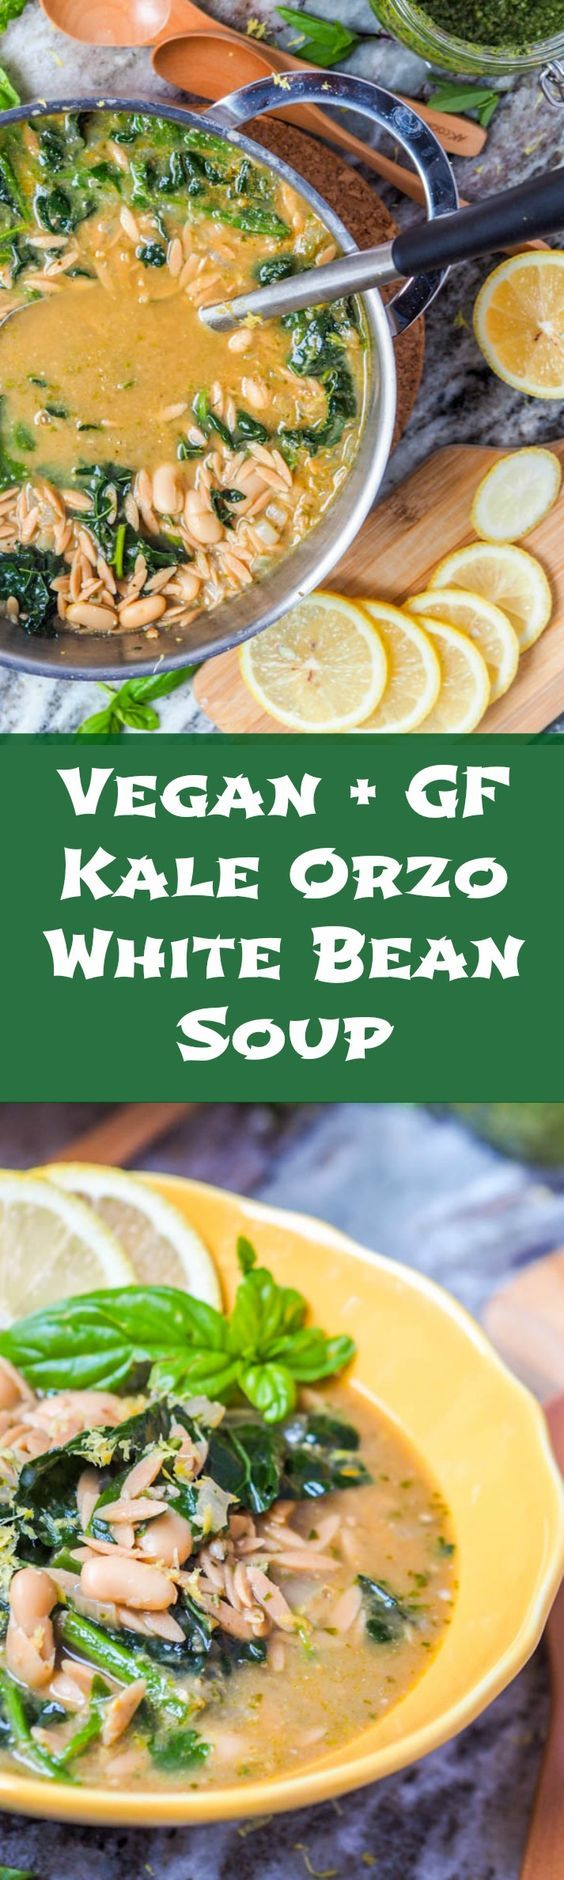 This eight ingredient vegan orzo soup with kale, white bean and pesto comes together in 30 minutes and is hearty enough for a full meal. Perfect for cooler fall nights. Gluten Free.  #soup #vegan #healthy via @acoupletravelers